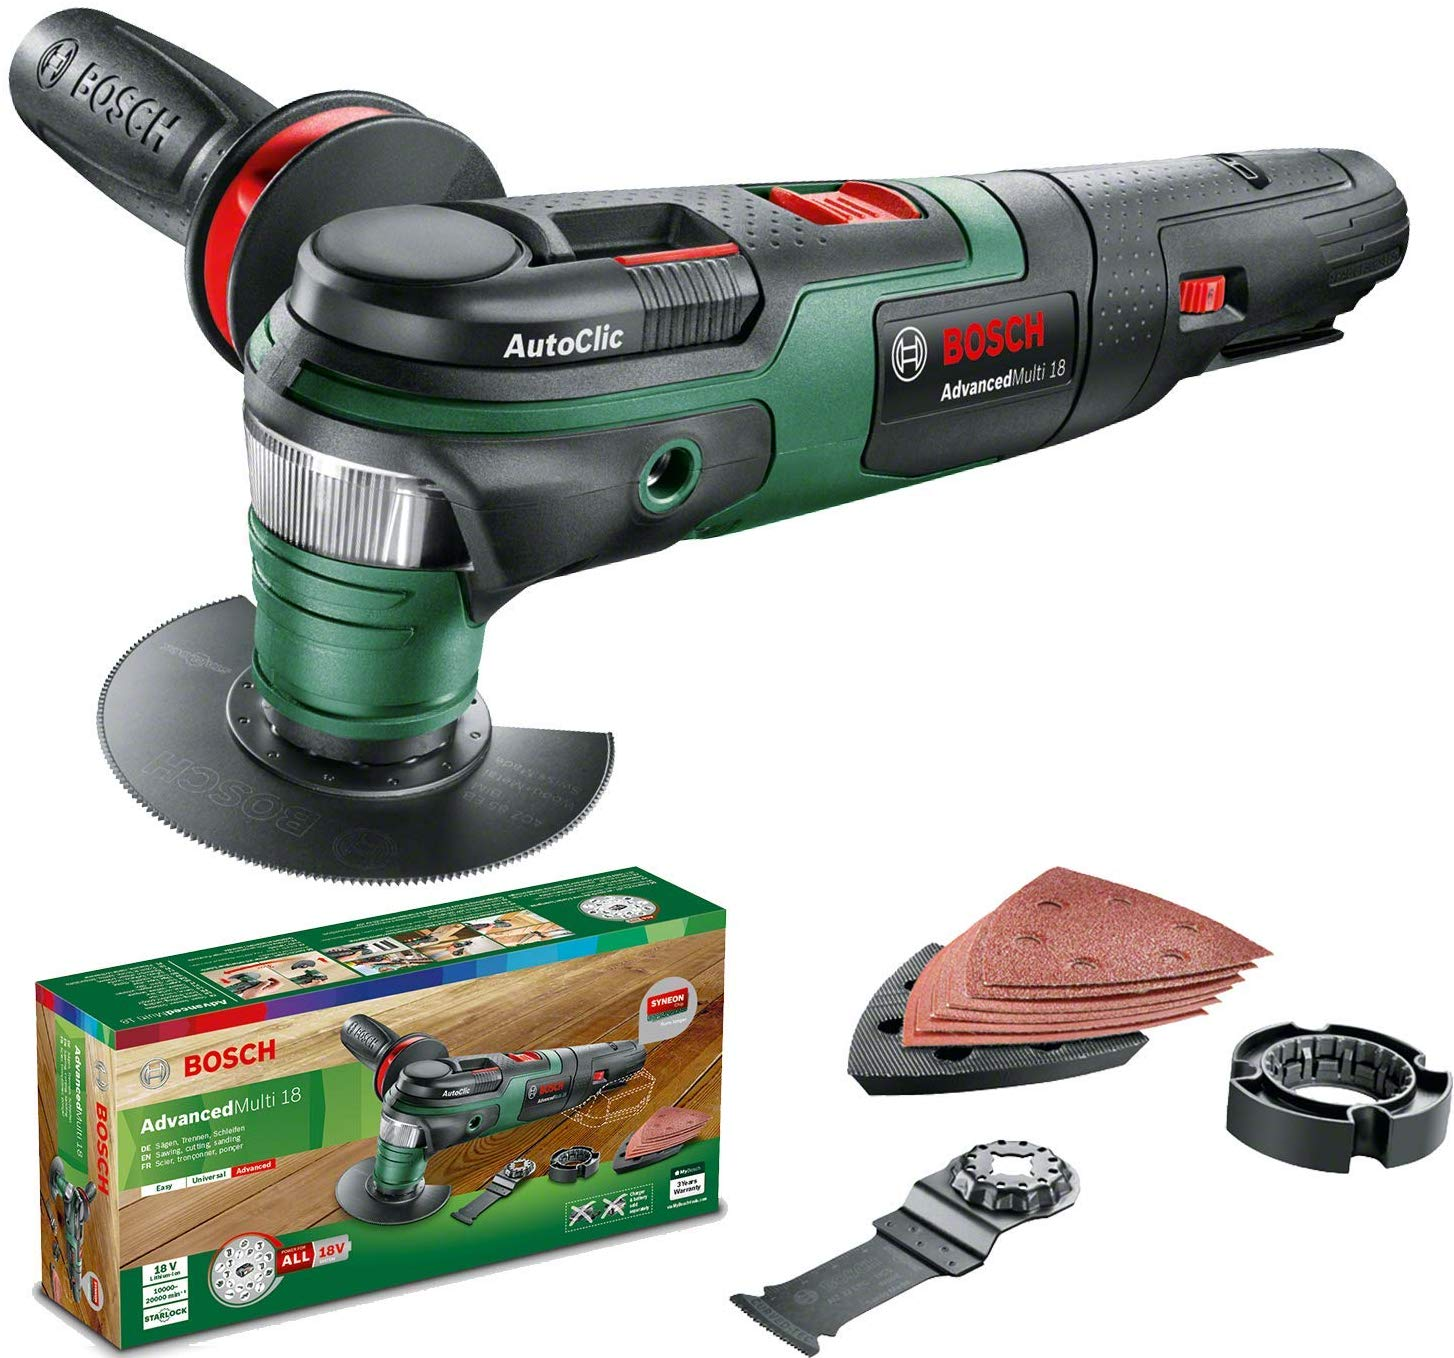 Bosch - Battery Multifunctional Tool AdvancedMulti 18 (Battery not included)